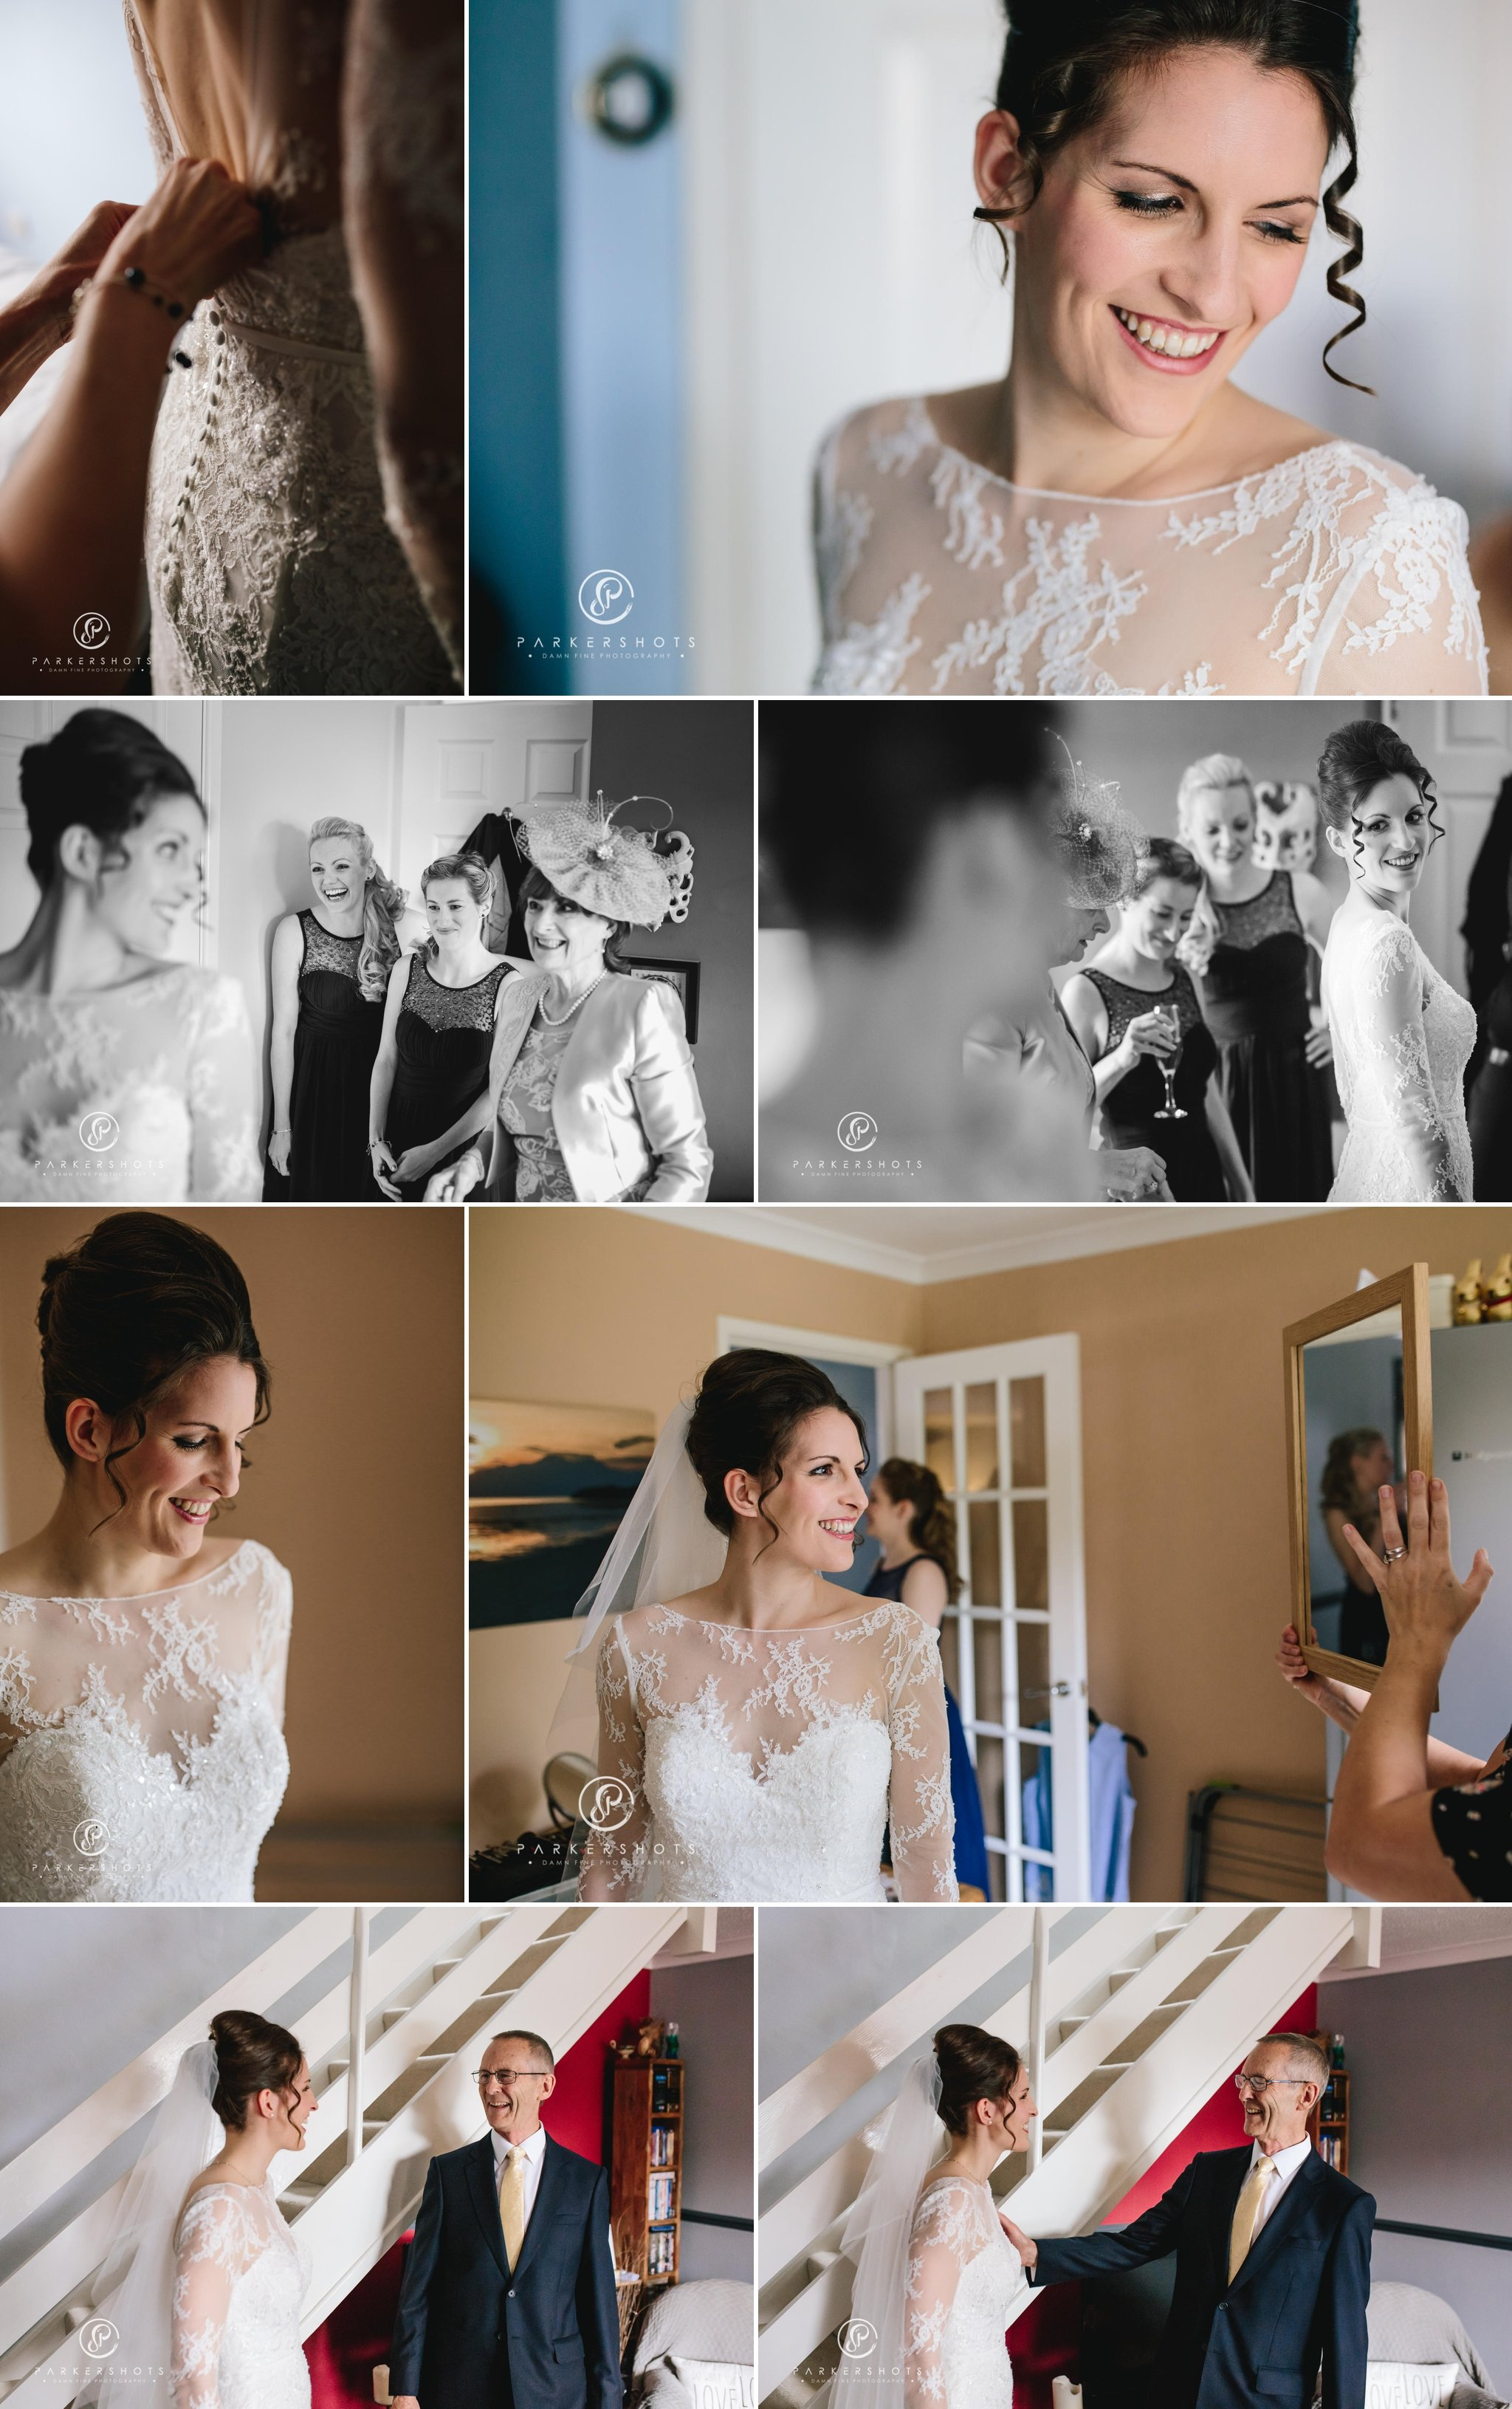 Bridal prep photography and portraits for wedding at Gravetye Manor